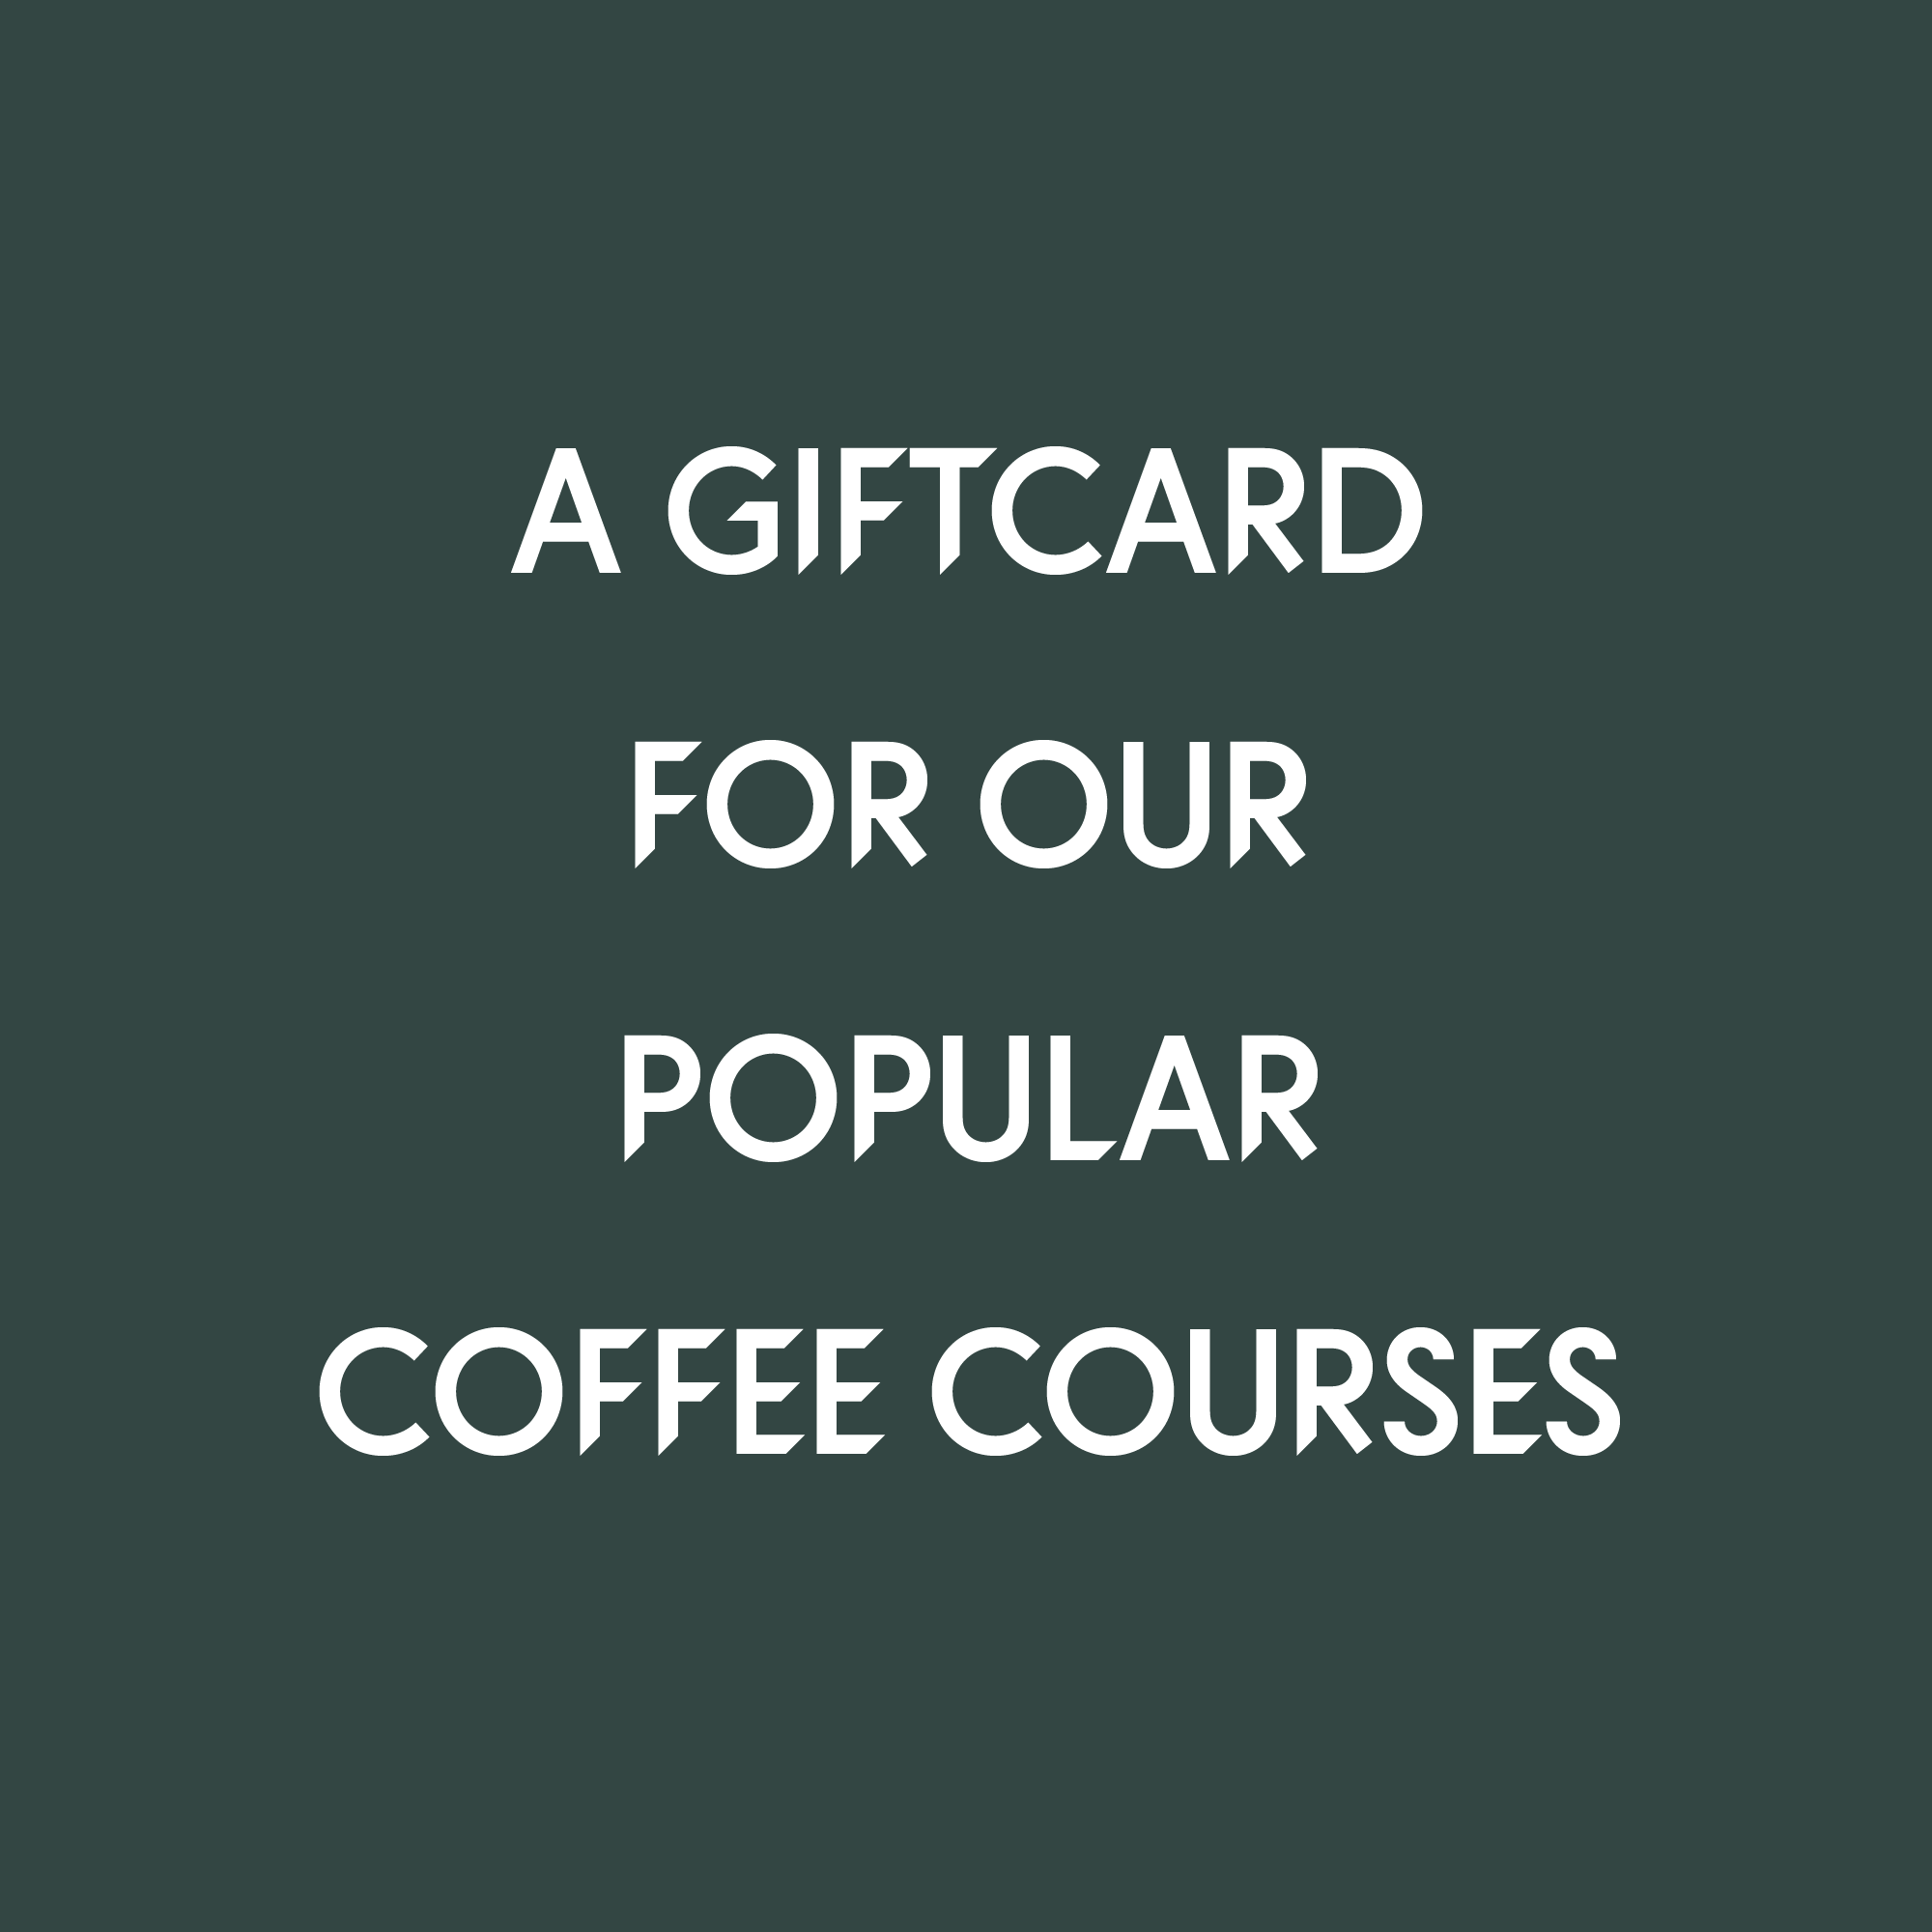 Choose between Black Brew Course, Barista Course, and Cupping Course